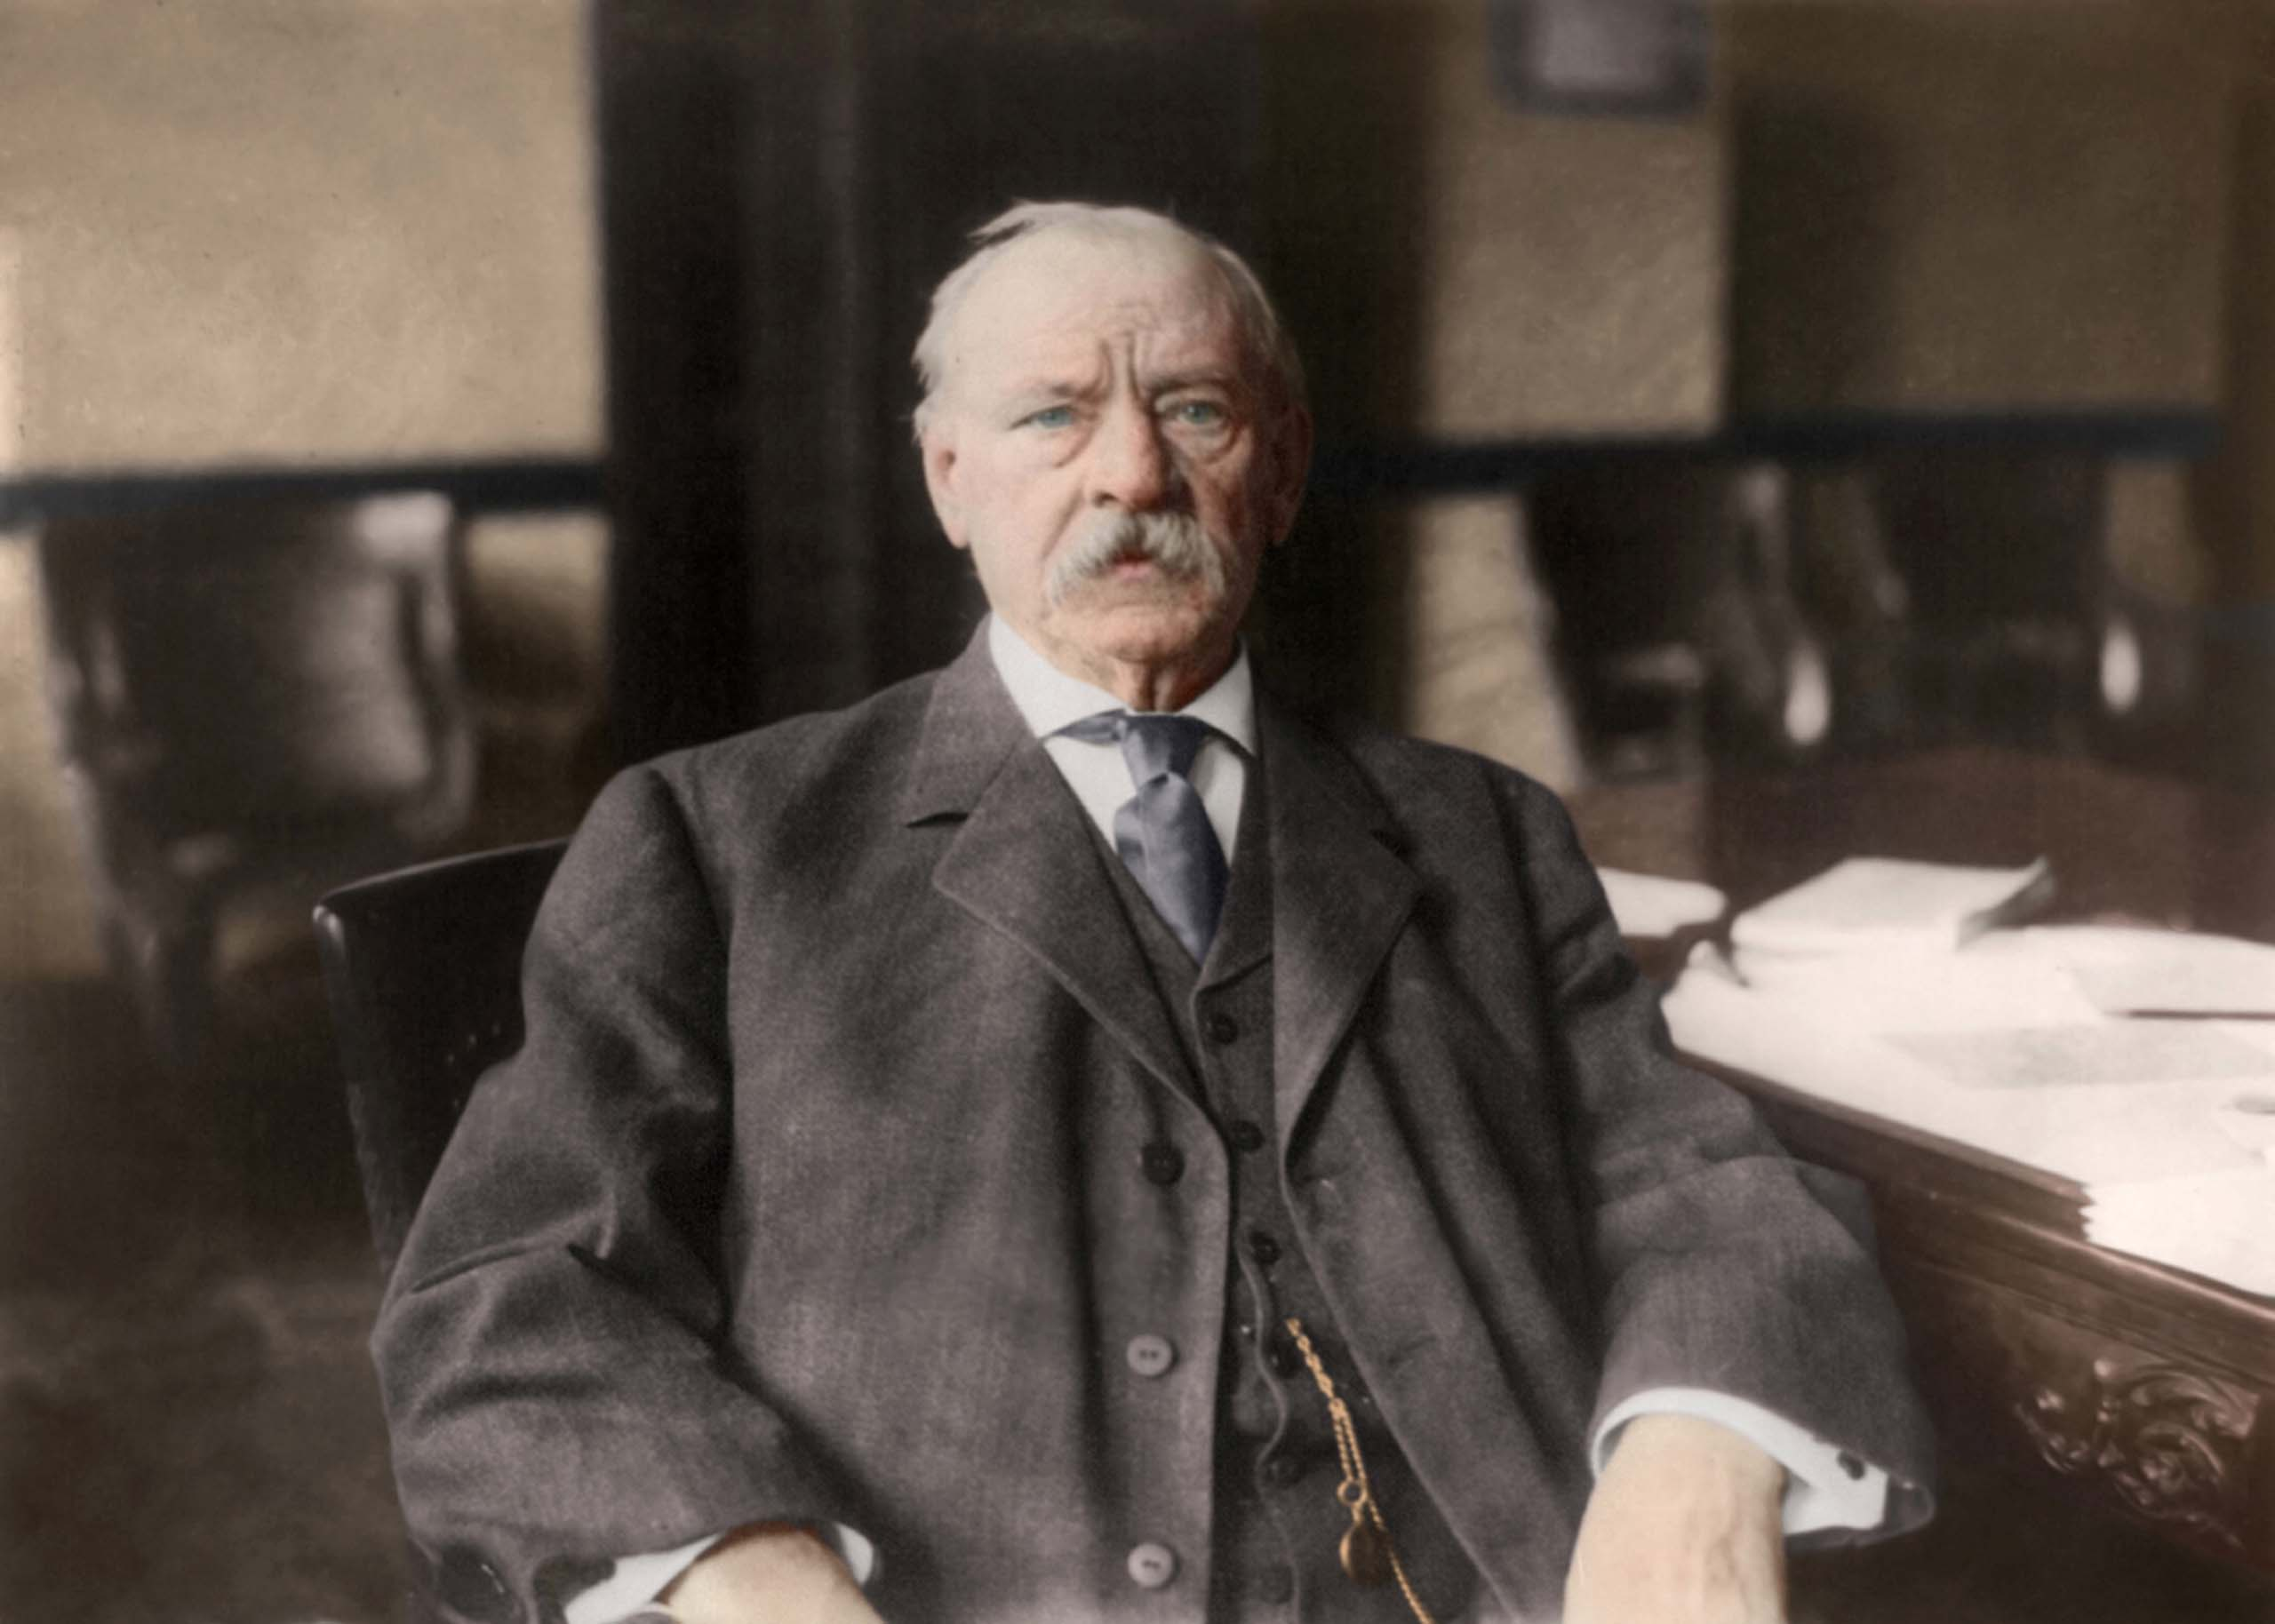 c. 1908. Grover Cleveland, half-length portrait, seated at desk.                                   <i>Ranked #20 in SRI Survey of U.S. Presidents.</i>